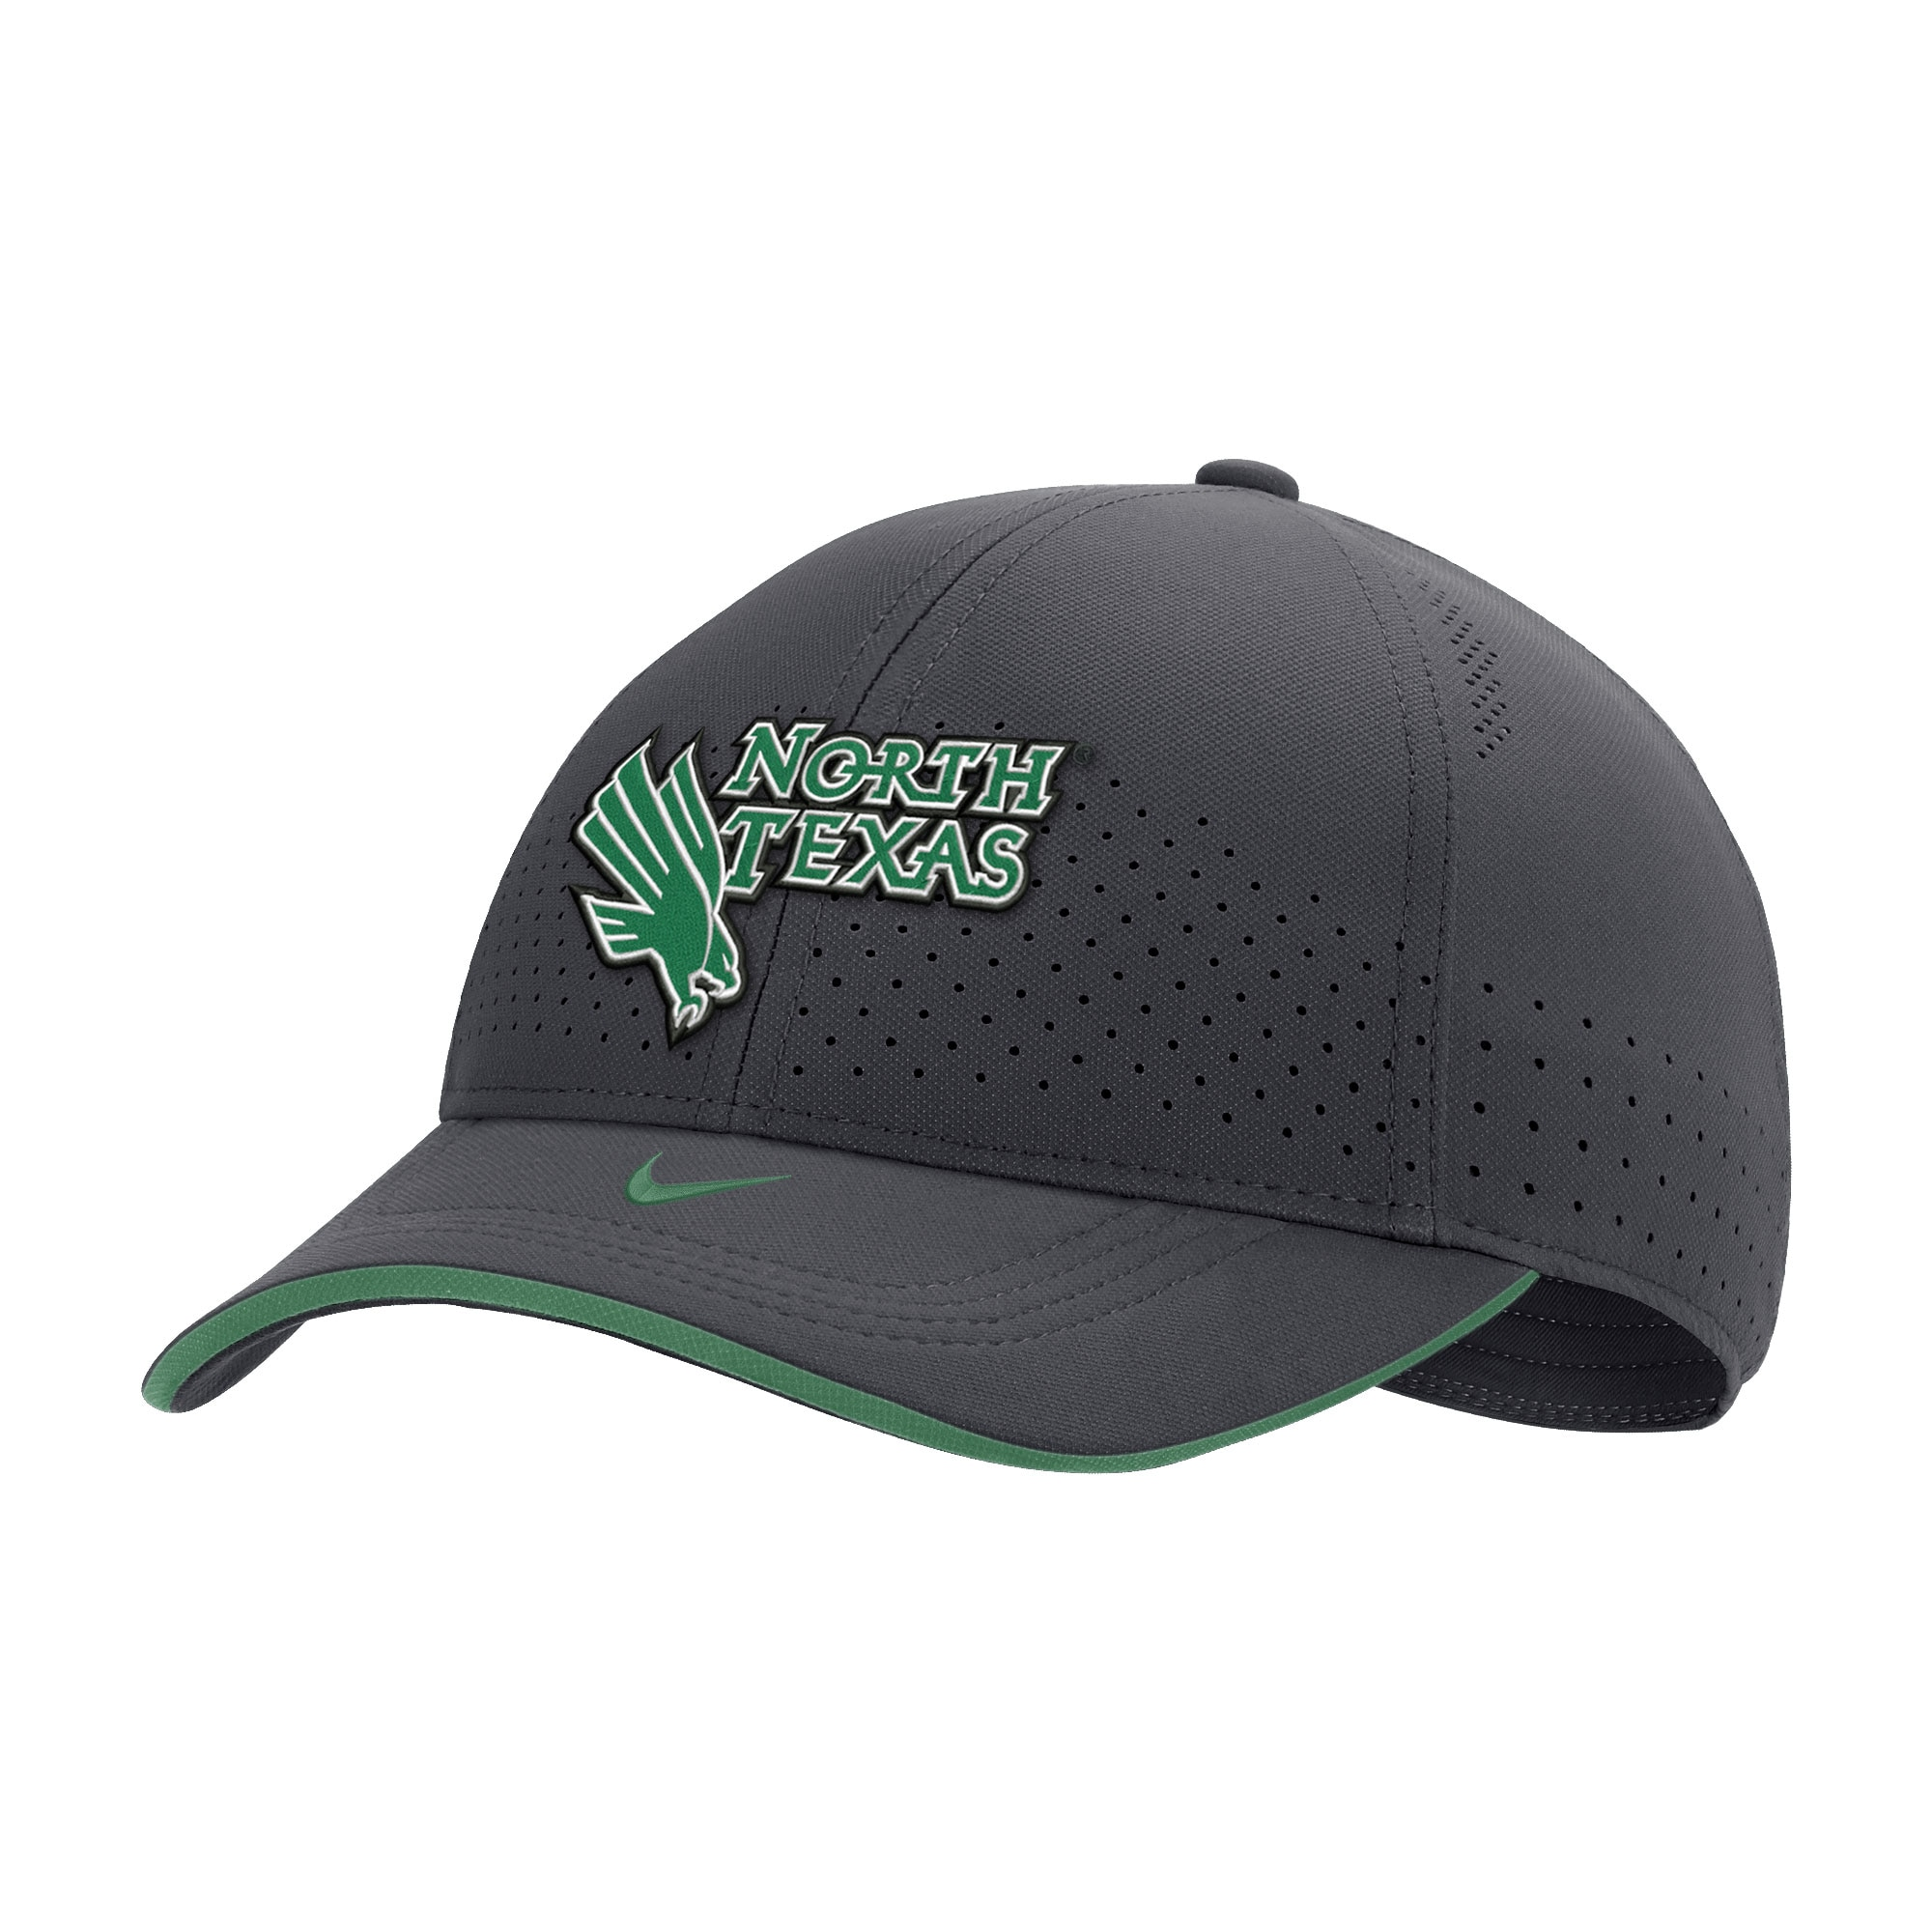 University of North Texas Nike Sideline 2020 L91 Adjustable Cap Hat